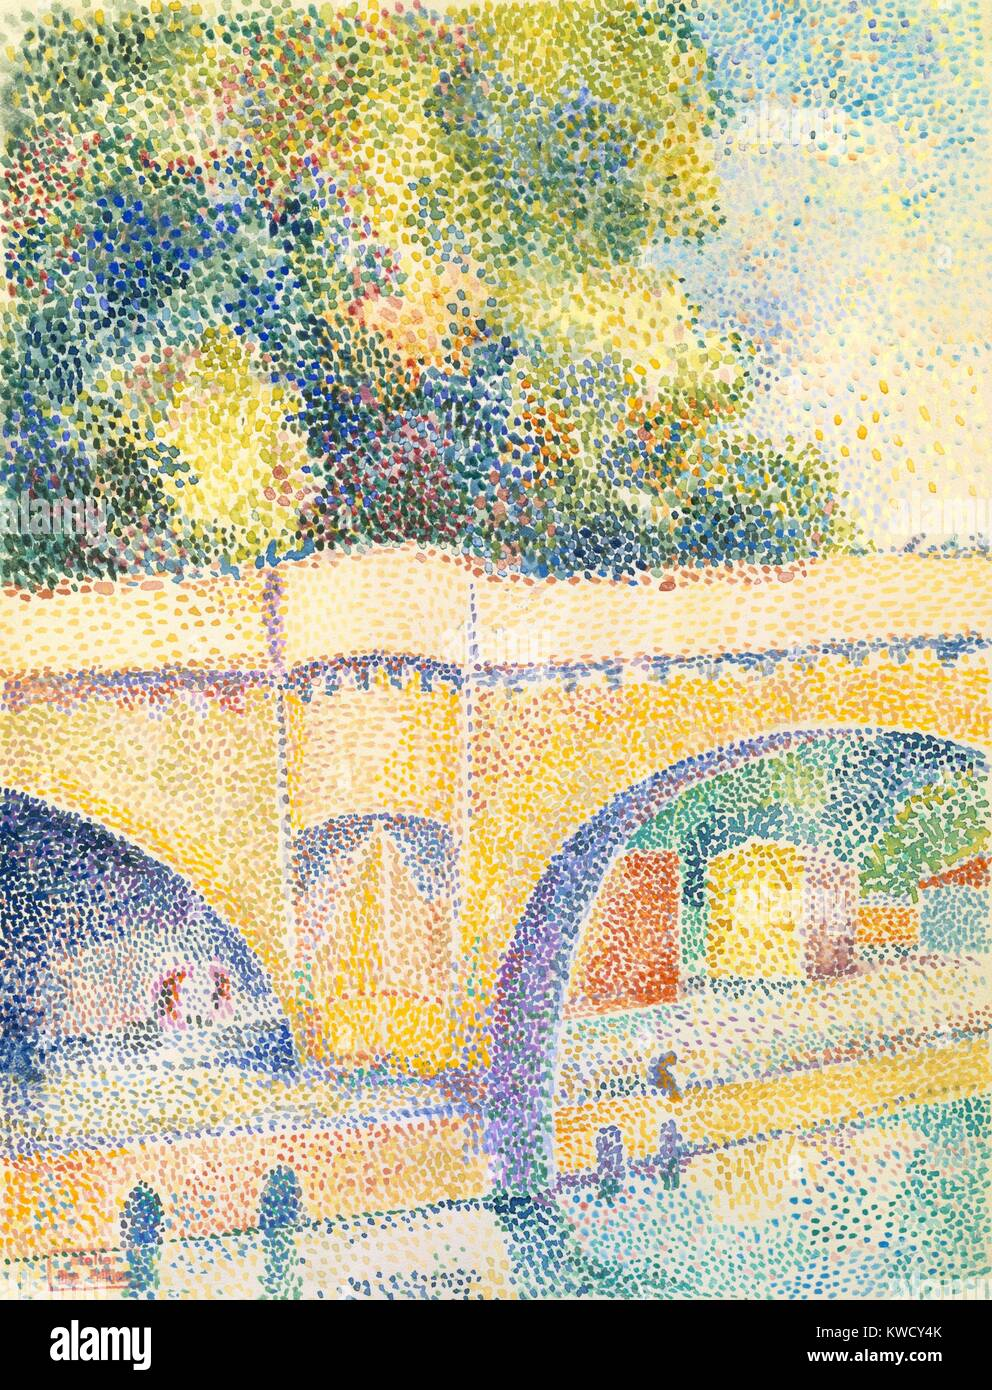 Le Pont Neuf, by Hippolyte Petitjean, 1912-14, French Neo-Impressionist, watercolor painting. Petitjean was a close - Stock Image